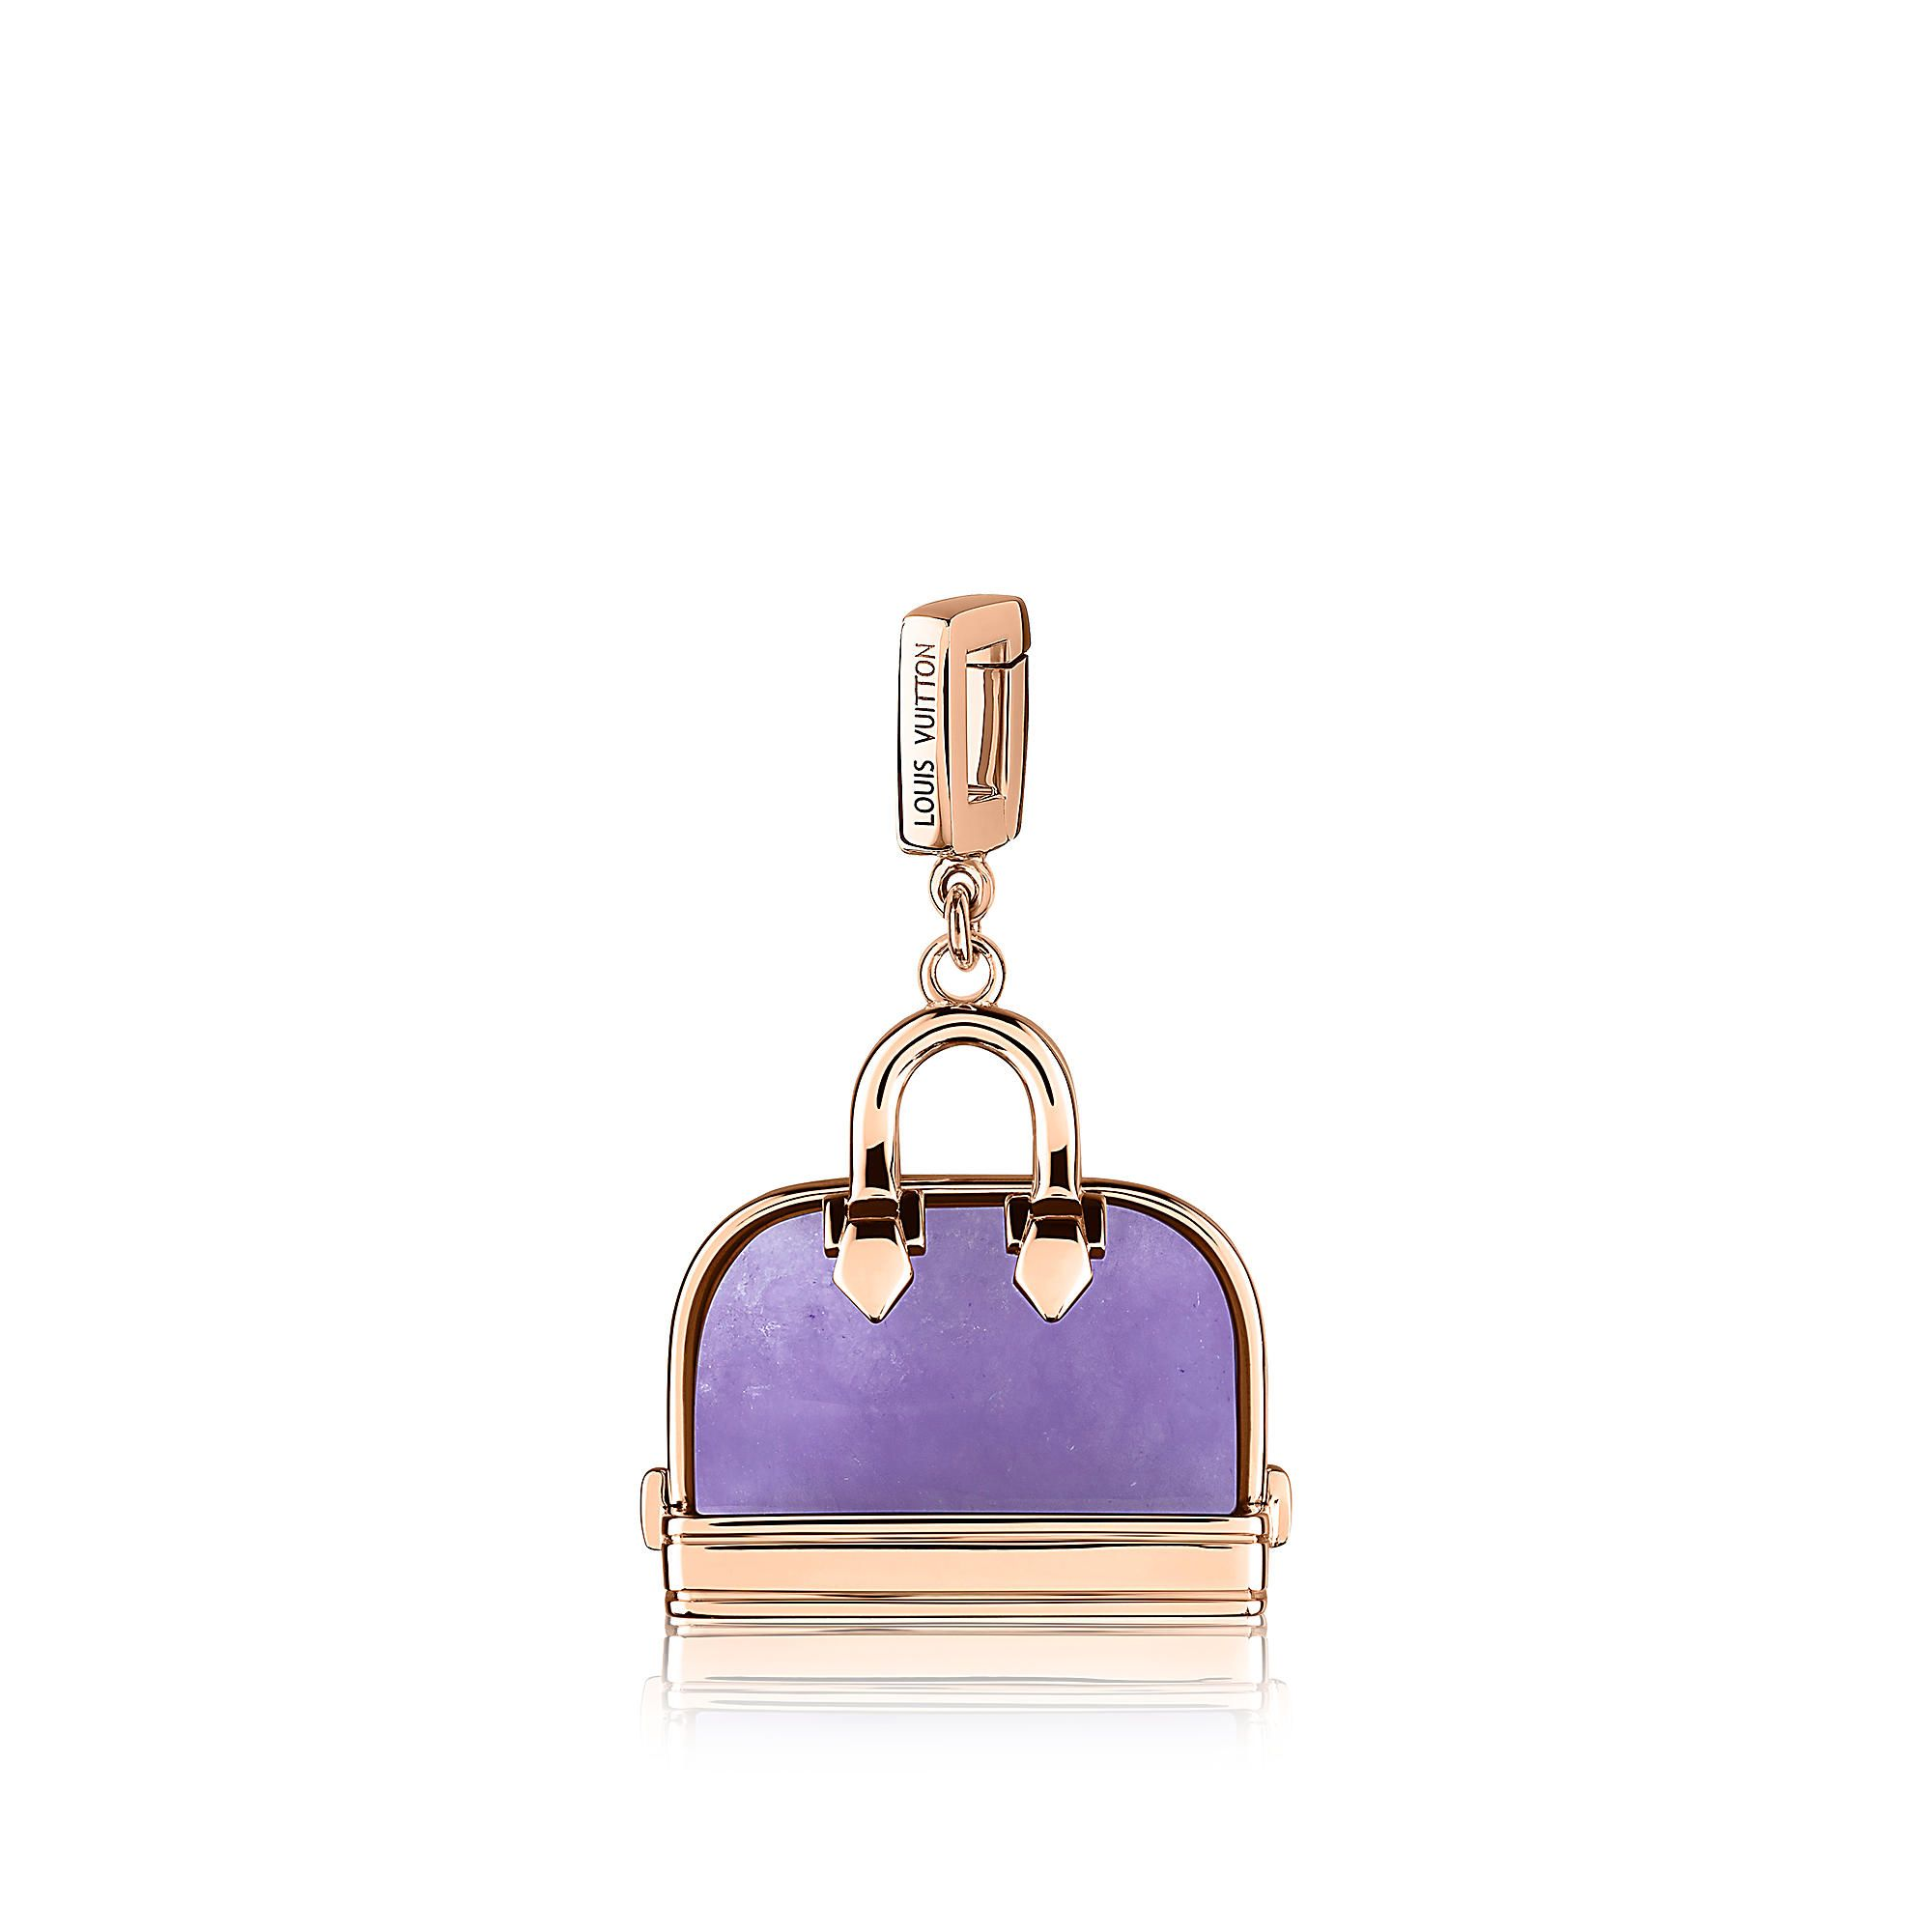 Discover louis vuitton alma charm in pink gold and lavender jadeite